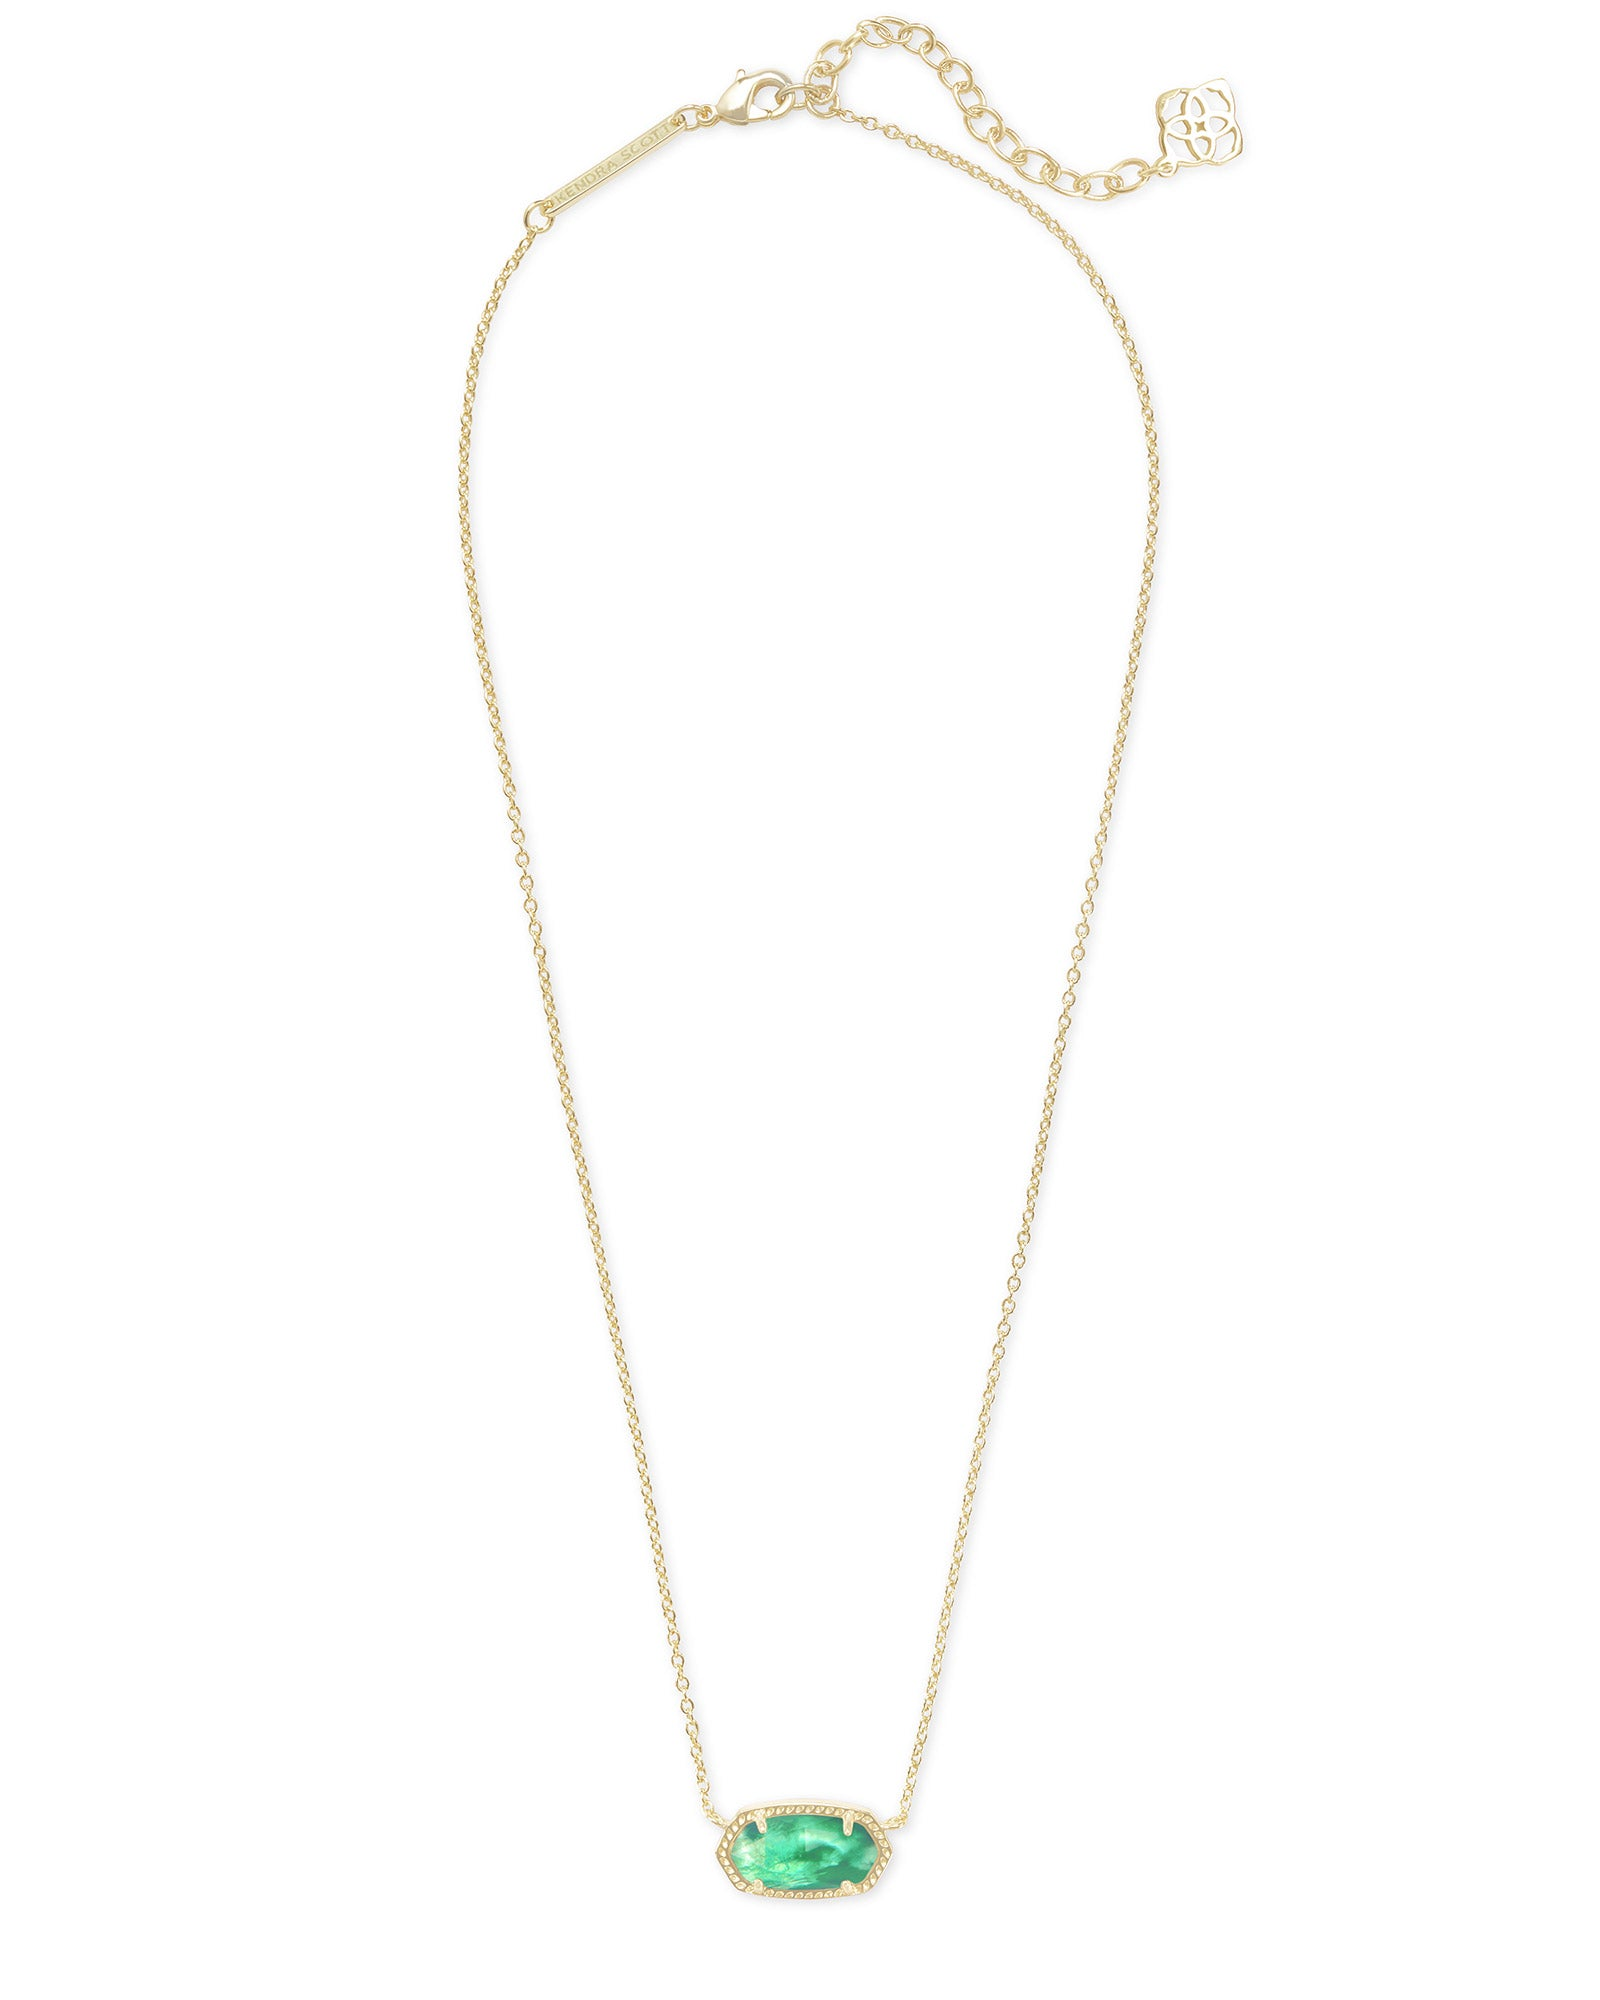 Elisa Gold Pendant Necklace in Jade Green Illusion